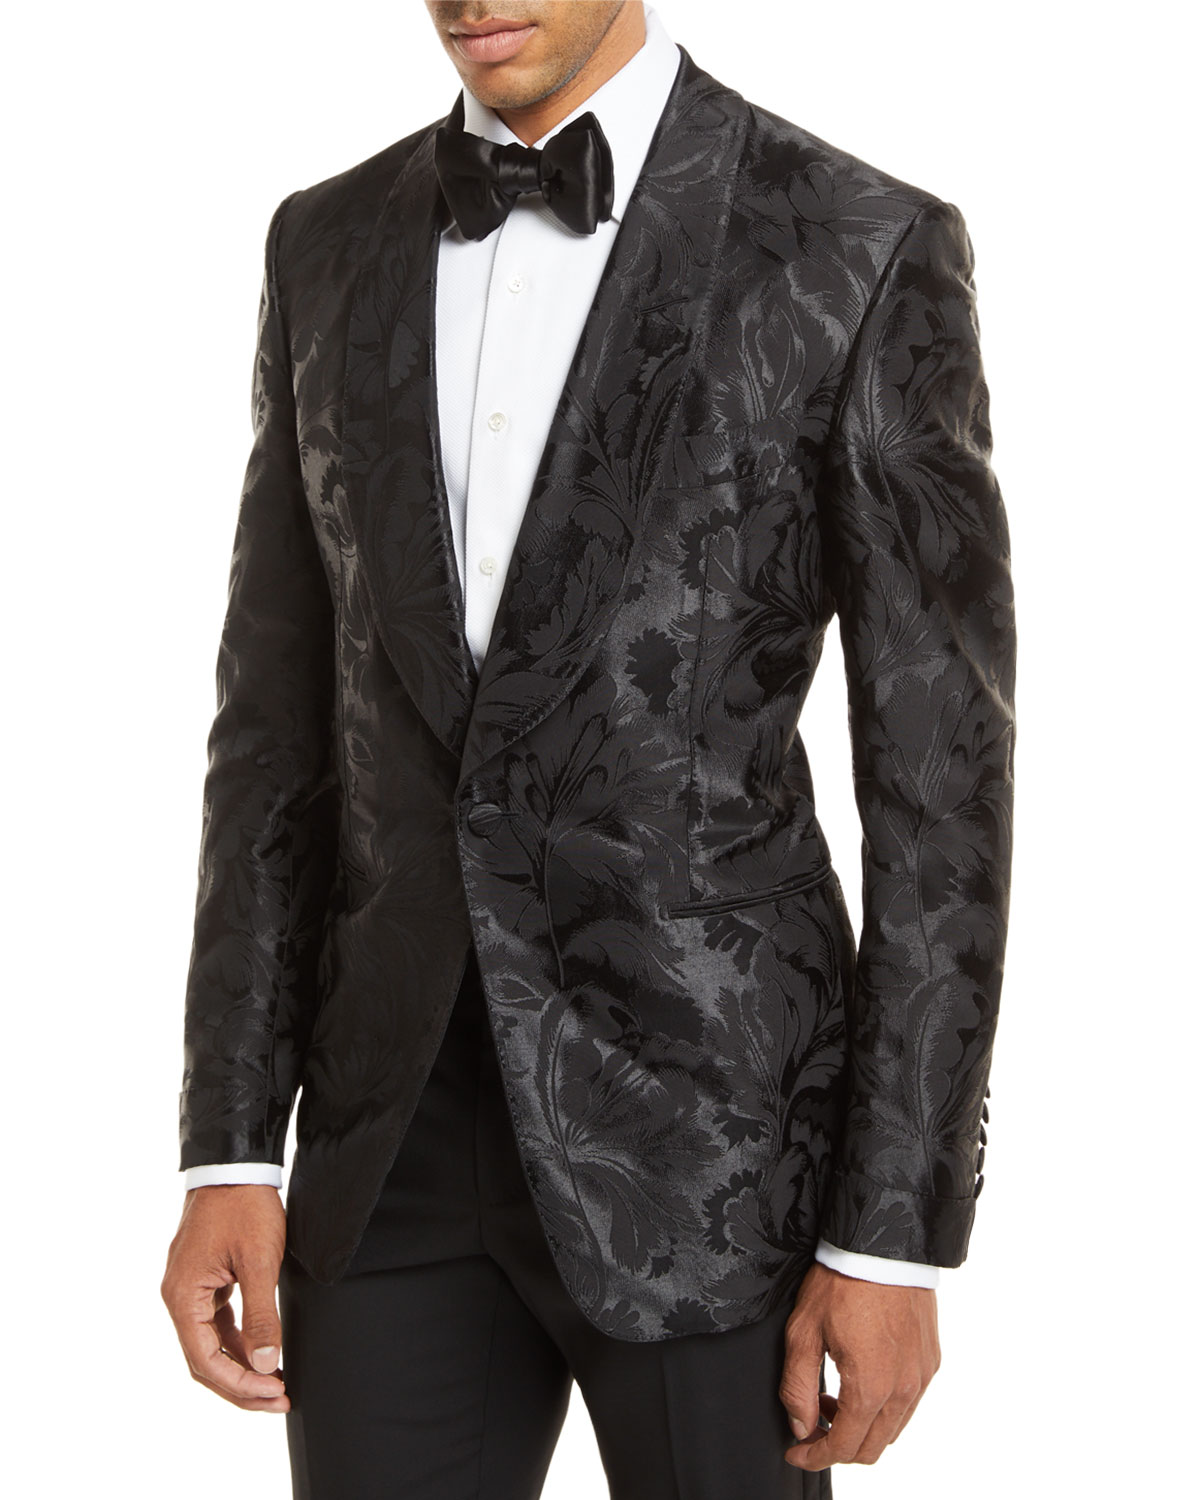 reliable reputation hot-selling clearance various design Floral Jacquard Dinner Jacket